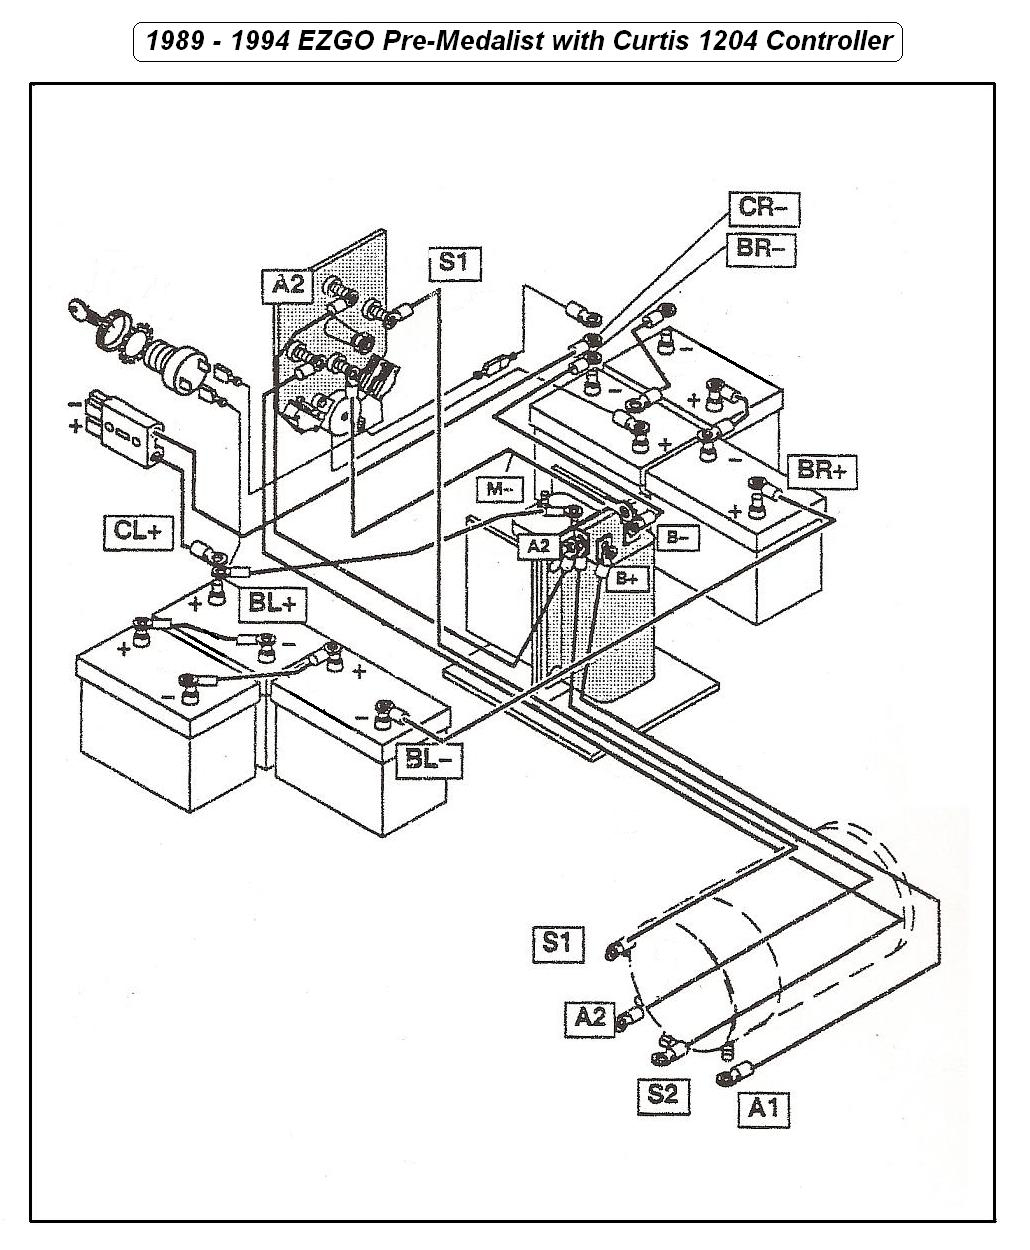 1989 Ezgo Golf Cart Battery Wiring Diagram | Wiring Diagram - Ezgo Golf Cart Wiring Diagram